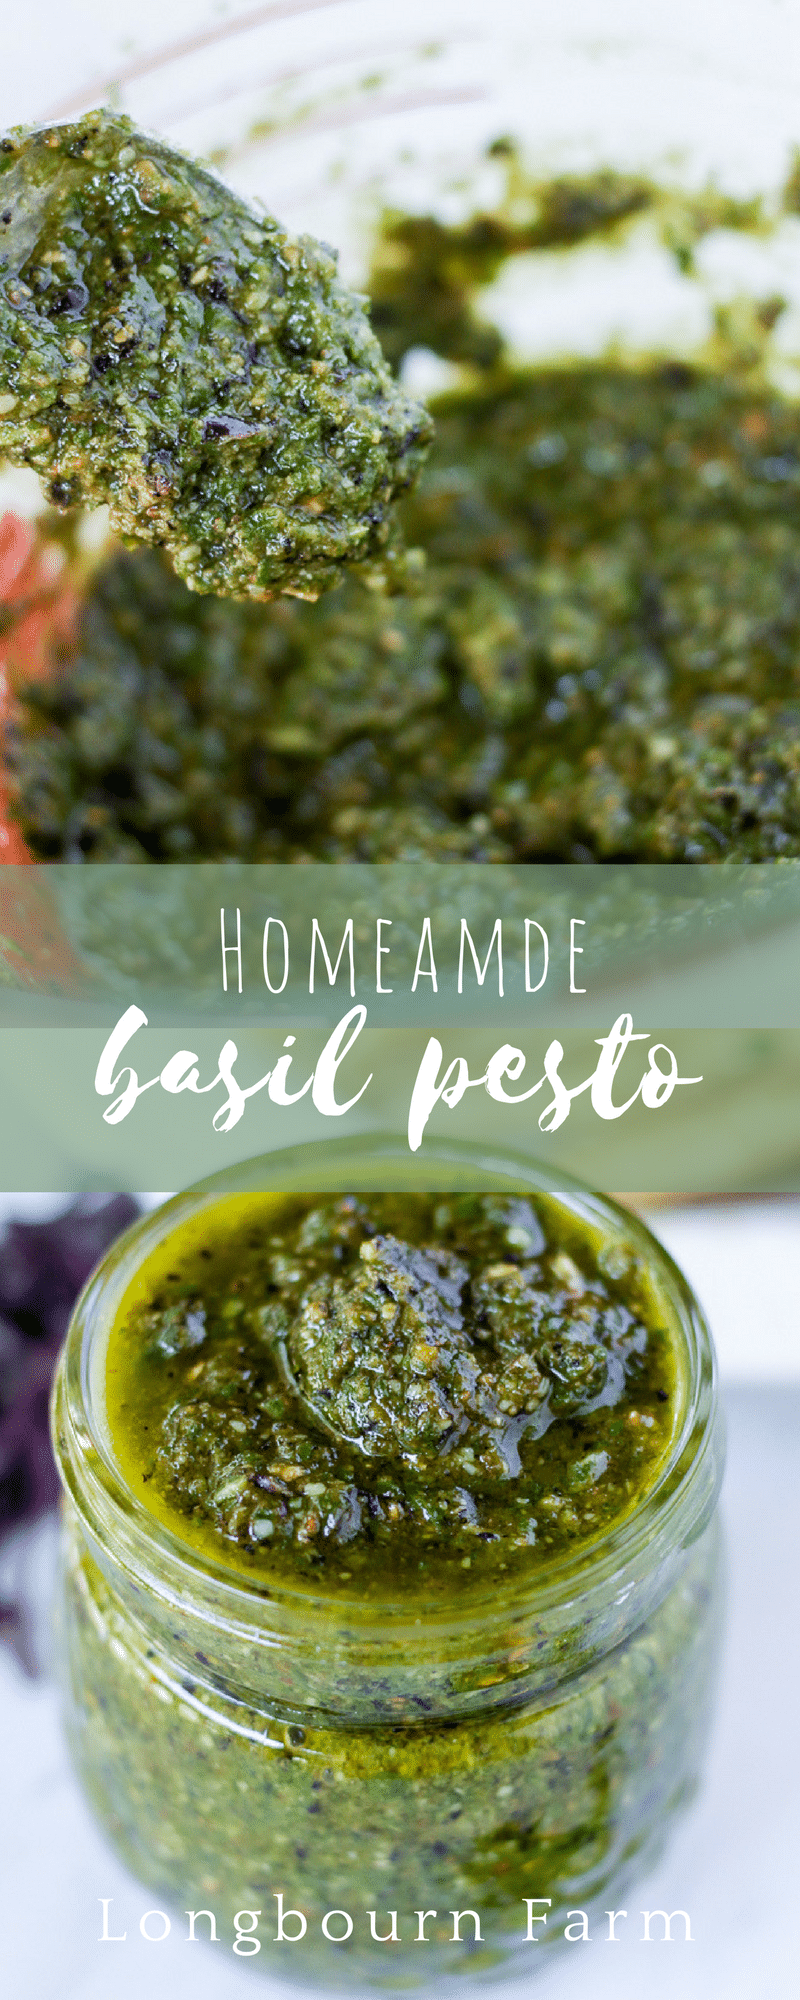 Homemade Pesto is so simple and incredibly versatile! Use this classic basil pesto recipe on pasta, in sauces, in bread, or even as a sandwich spread! via @longbournfarm